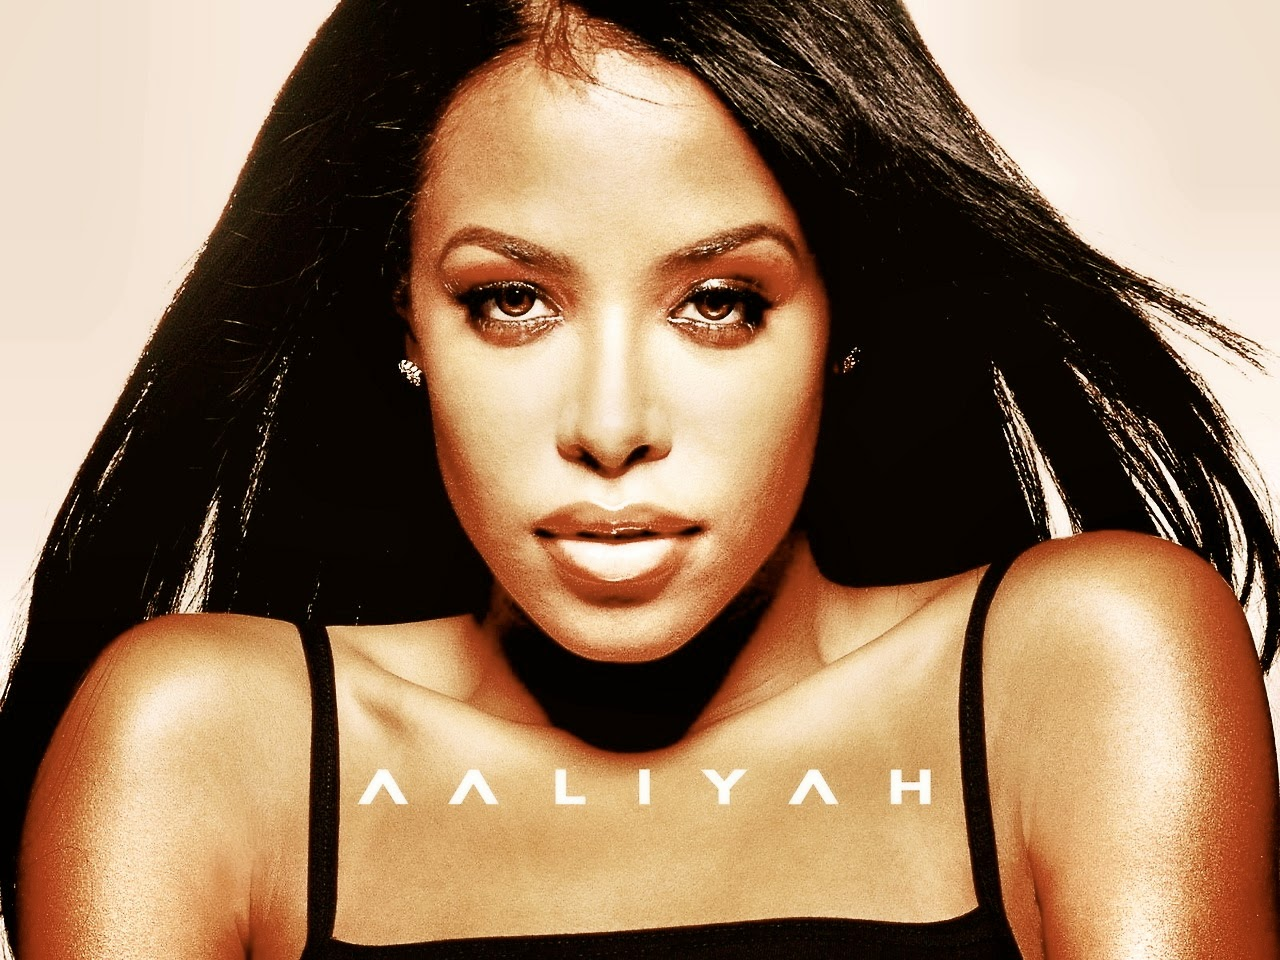 aaliyah, lifetime, timbaland, missy elliott, wendy williams,